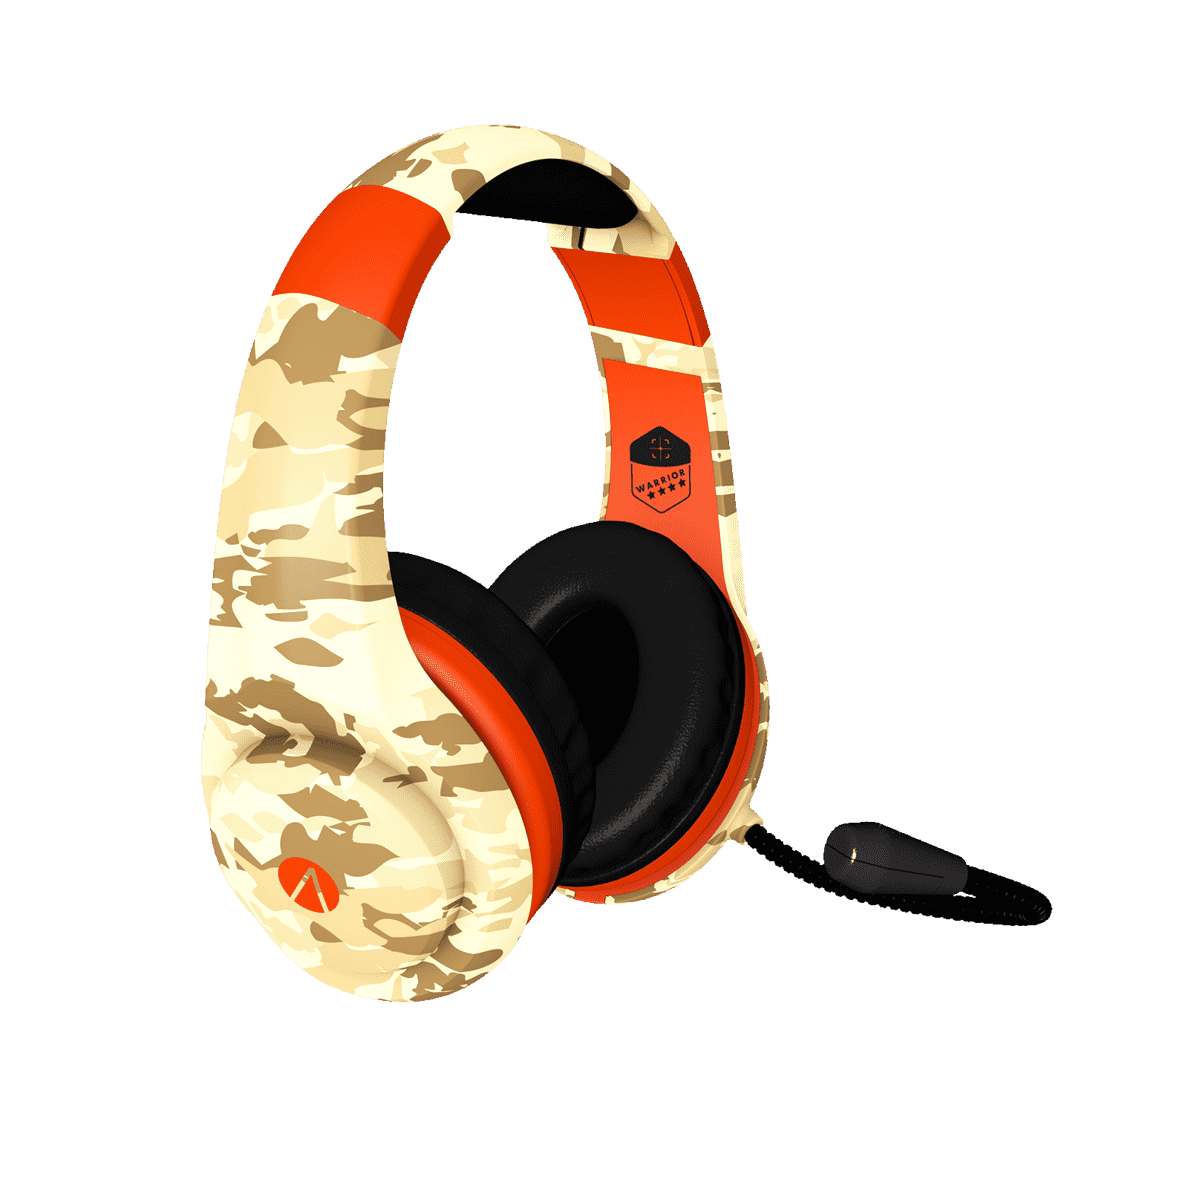 STEALTH Multi Format Stereo Headset Warrior Camo Gaming Camouflage